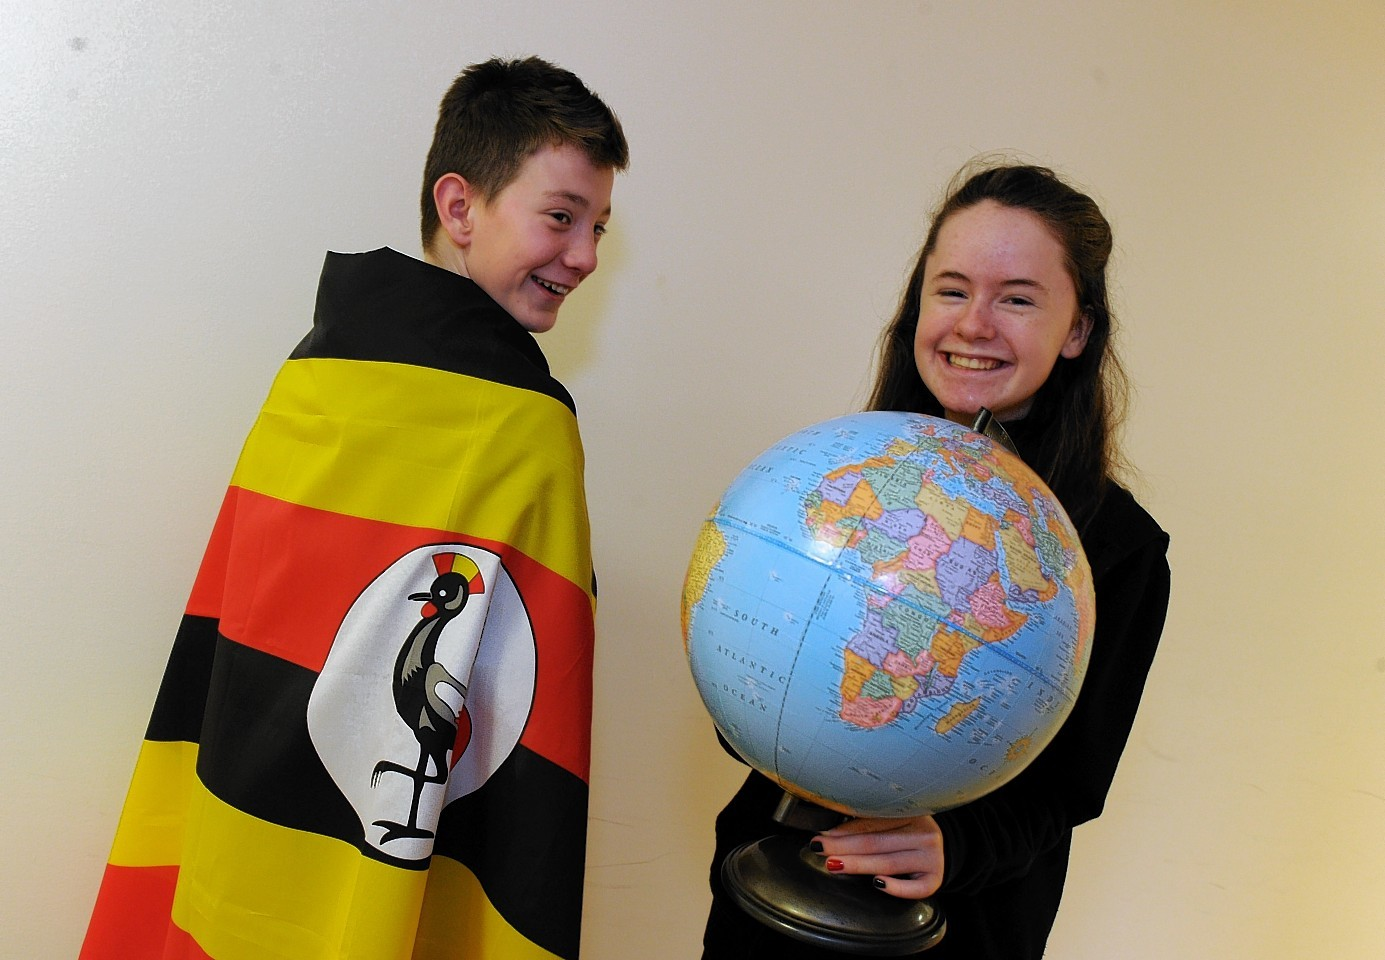 First year Bucksburn Academy students, Jordan Galbraith and Rachel Davidson, are taking part in ARCHIE for Uganda, raising money to build a children's operating theatre in the capital.